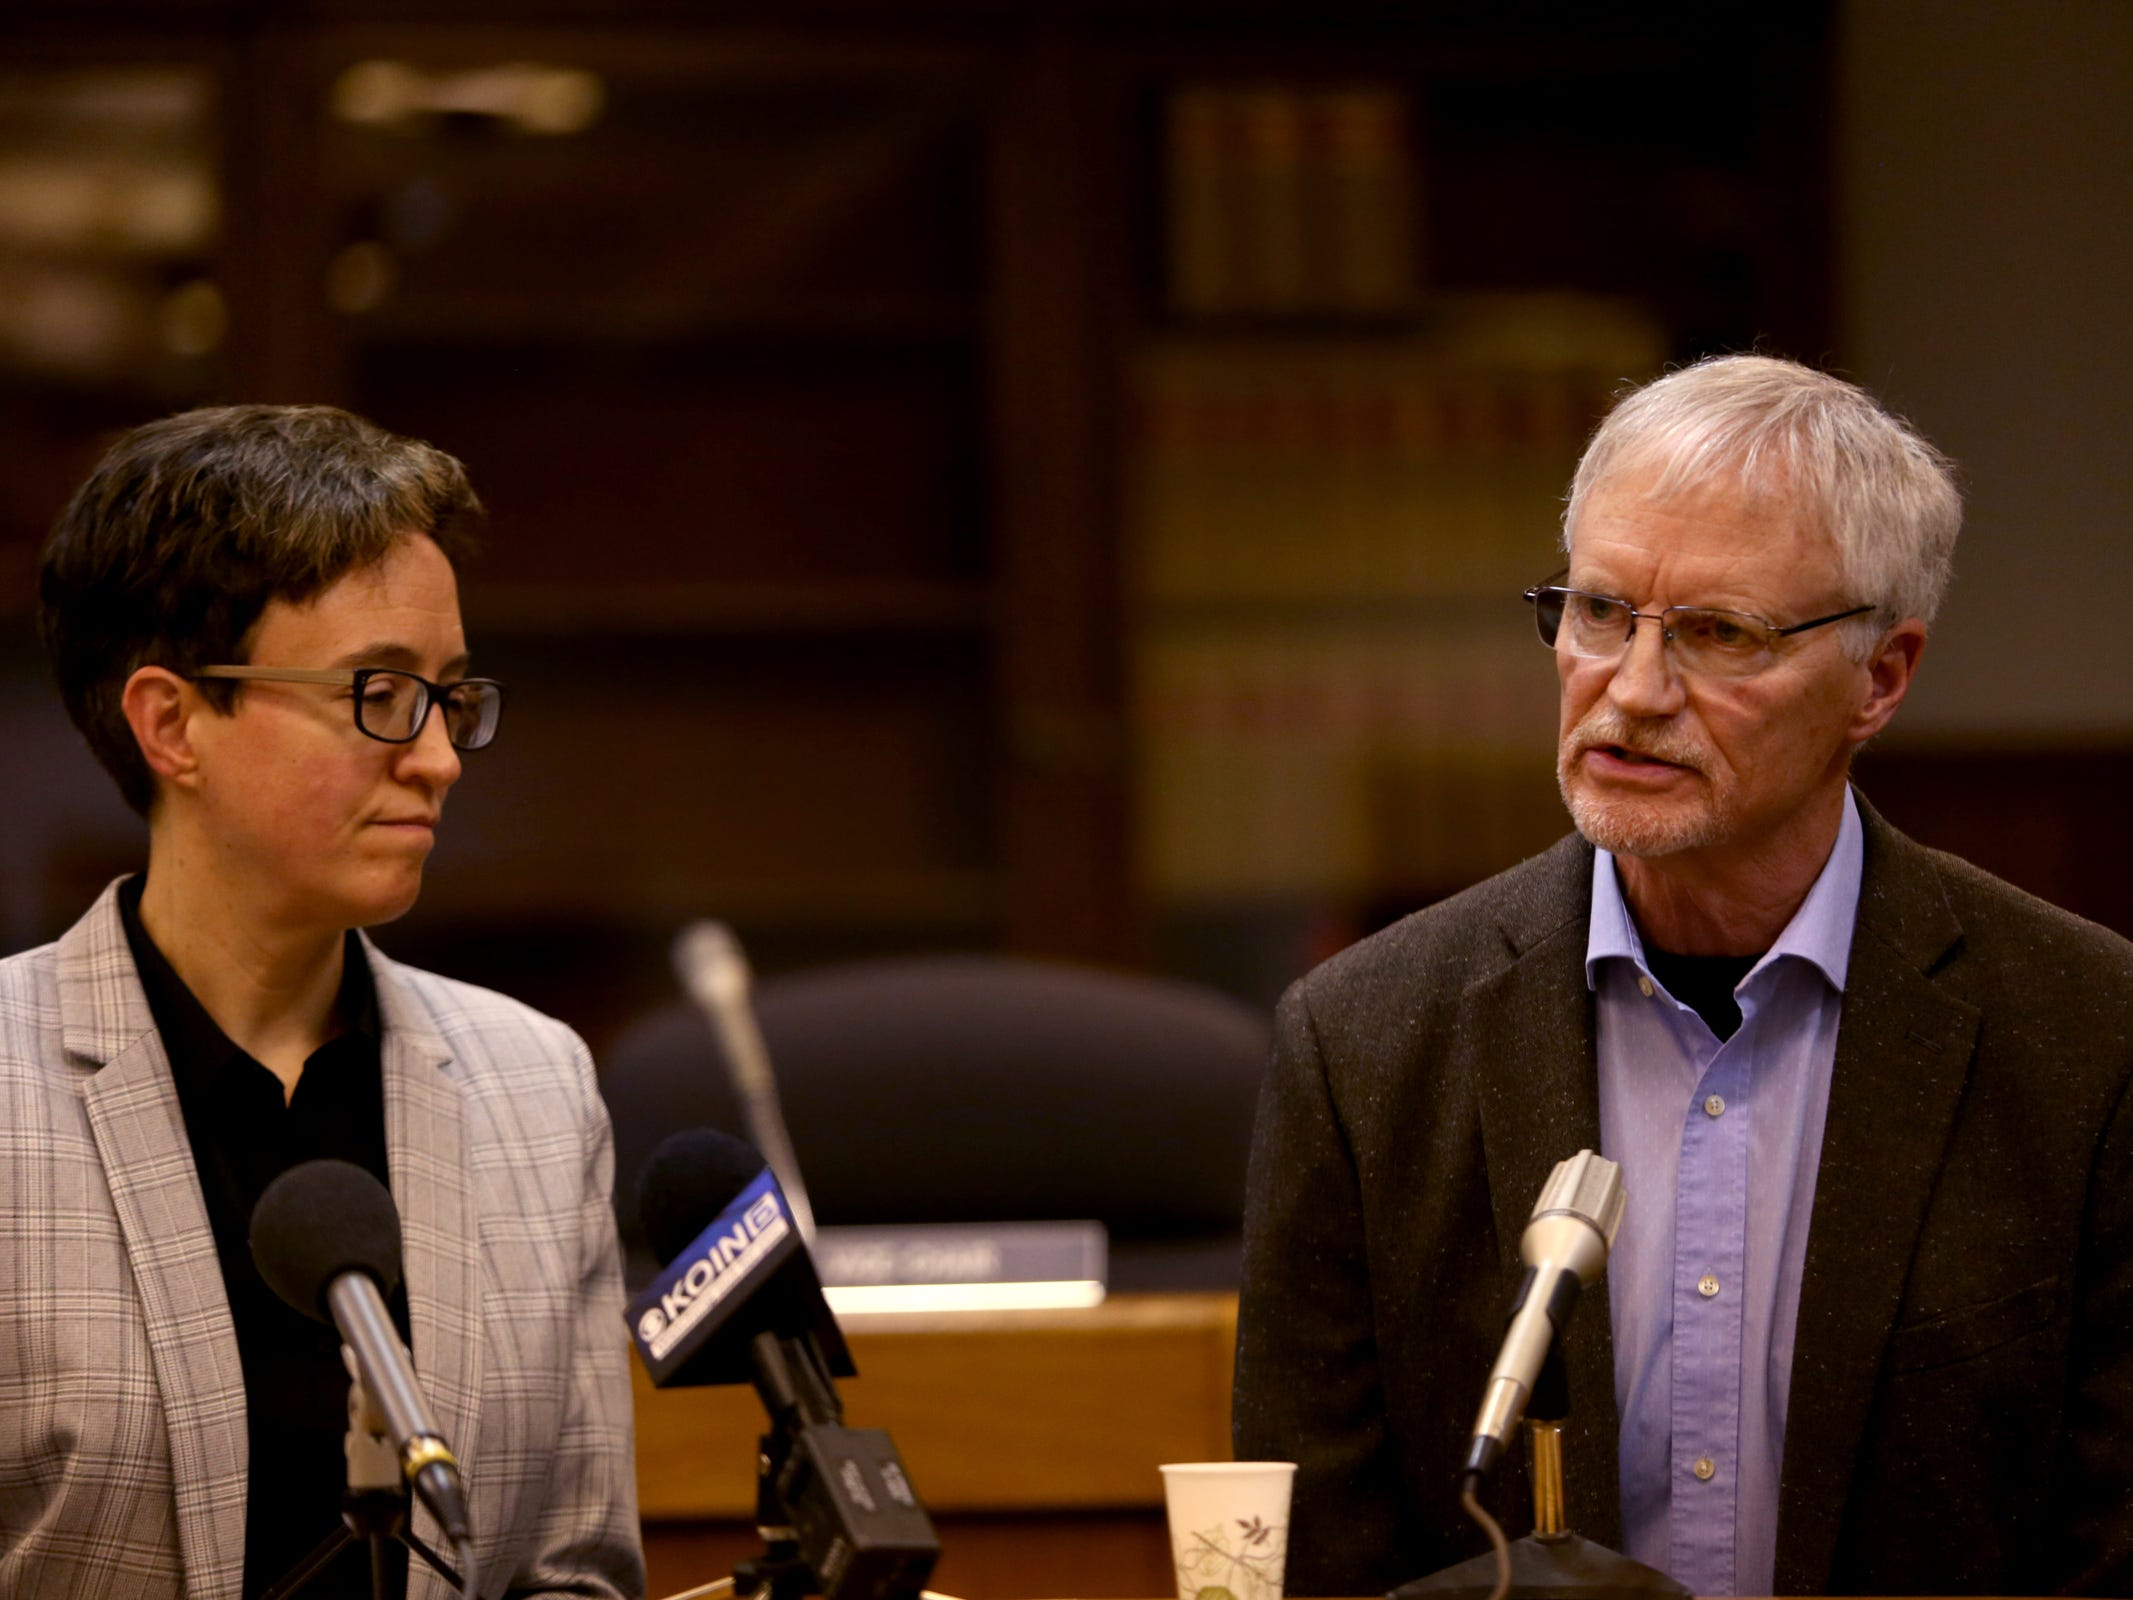 House Speaker Tina Kotek and Rep. Carl Wilson, R-Grants Pass, speak during the AP Legislative Preview Day at the Oregon State Capitol in Salem on Friday, Jan. 18, 2019. The 2019 Oregon legislative session begins January 22.